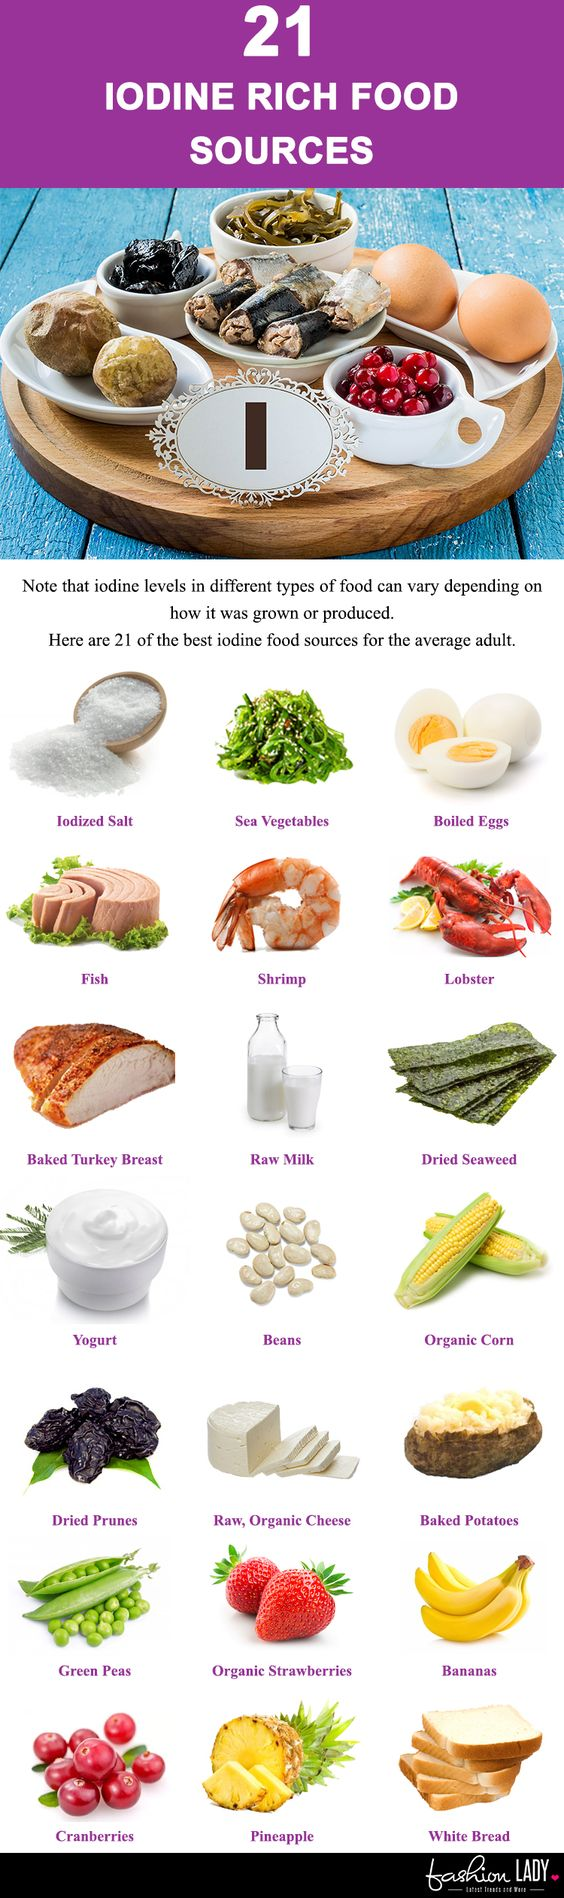 Food Sources Of Iodine In Diet